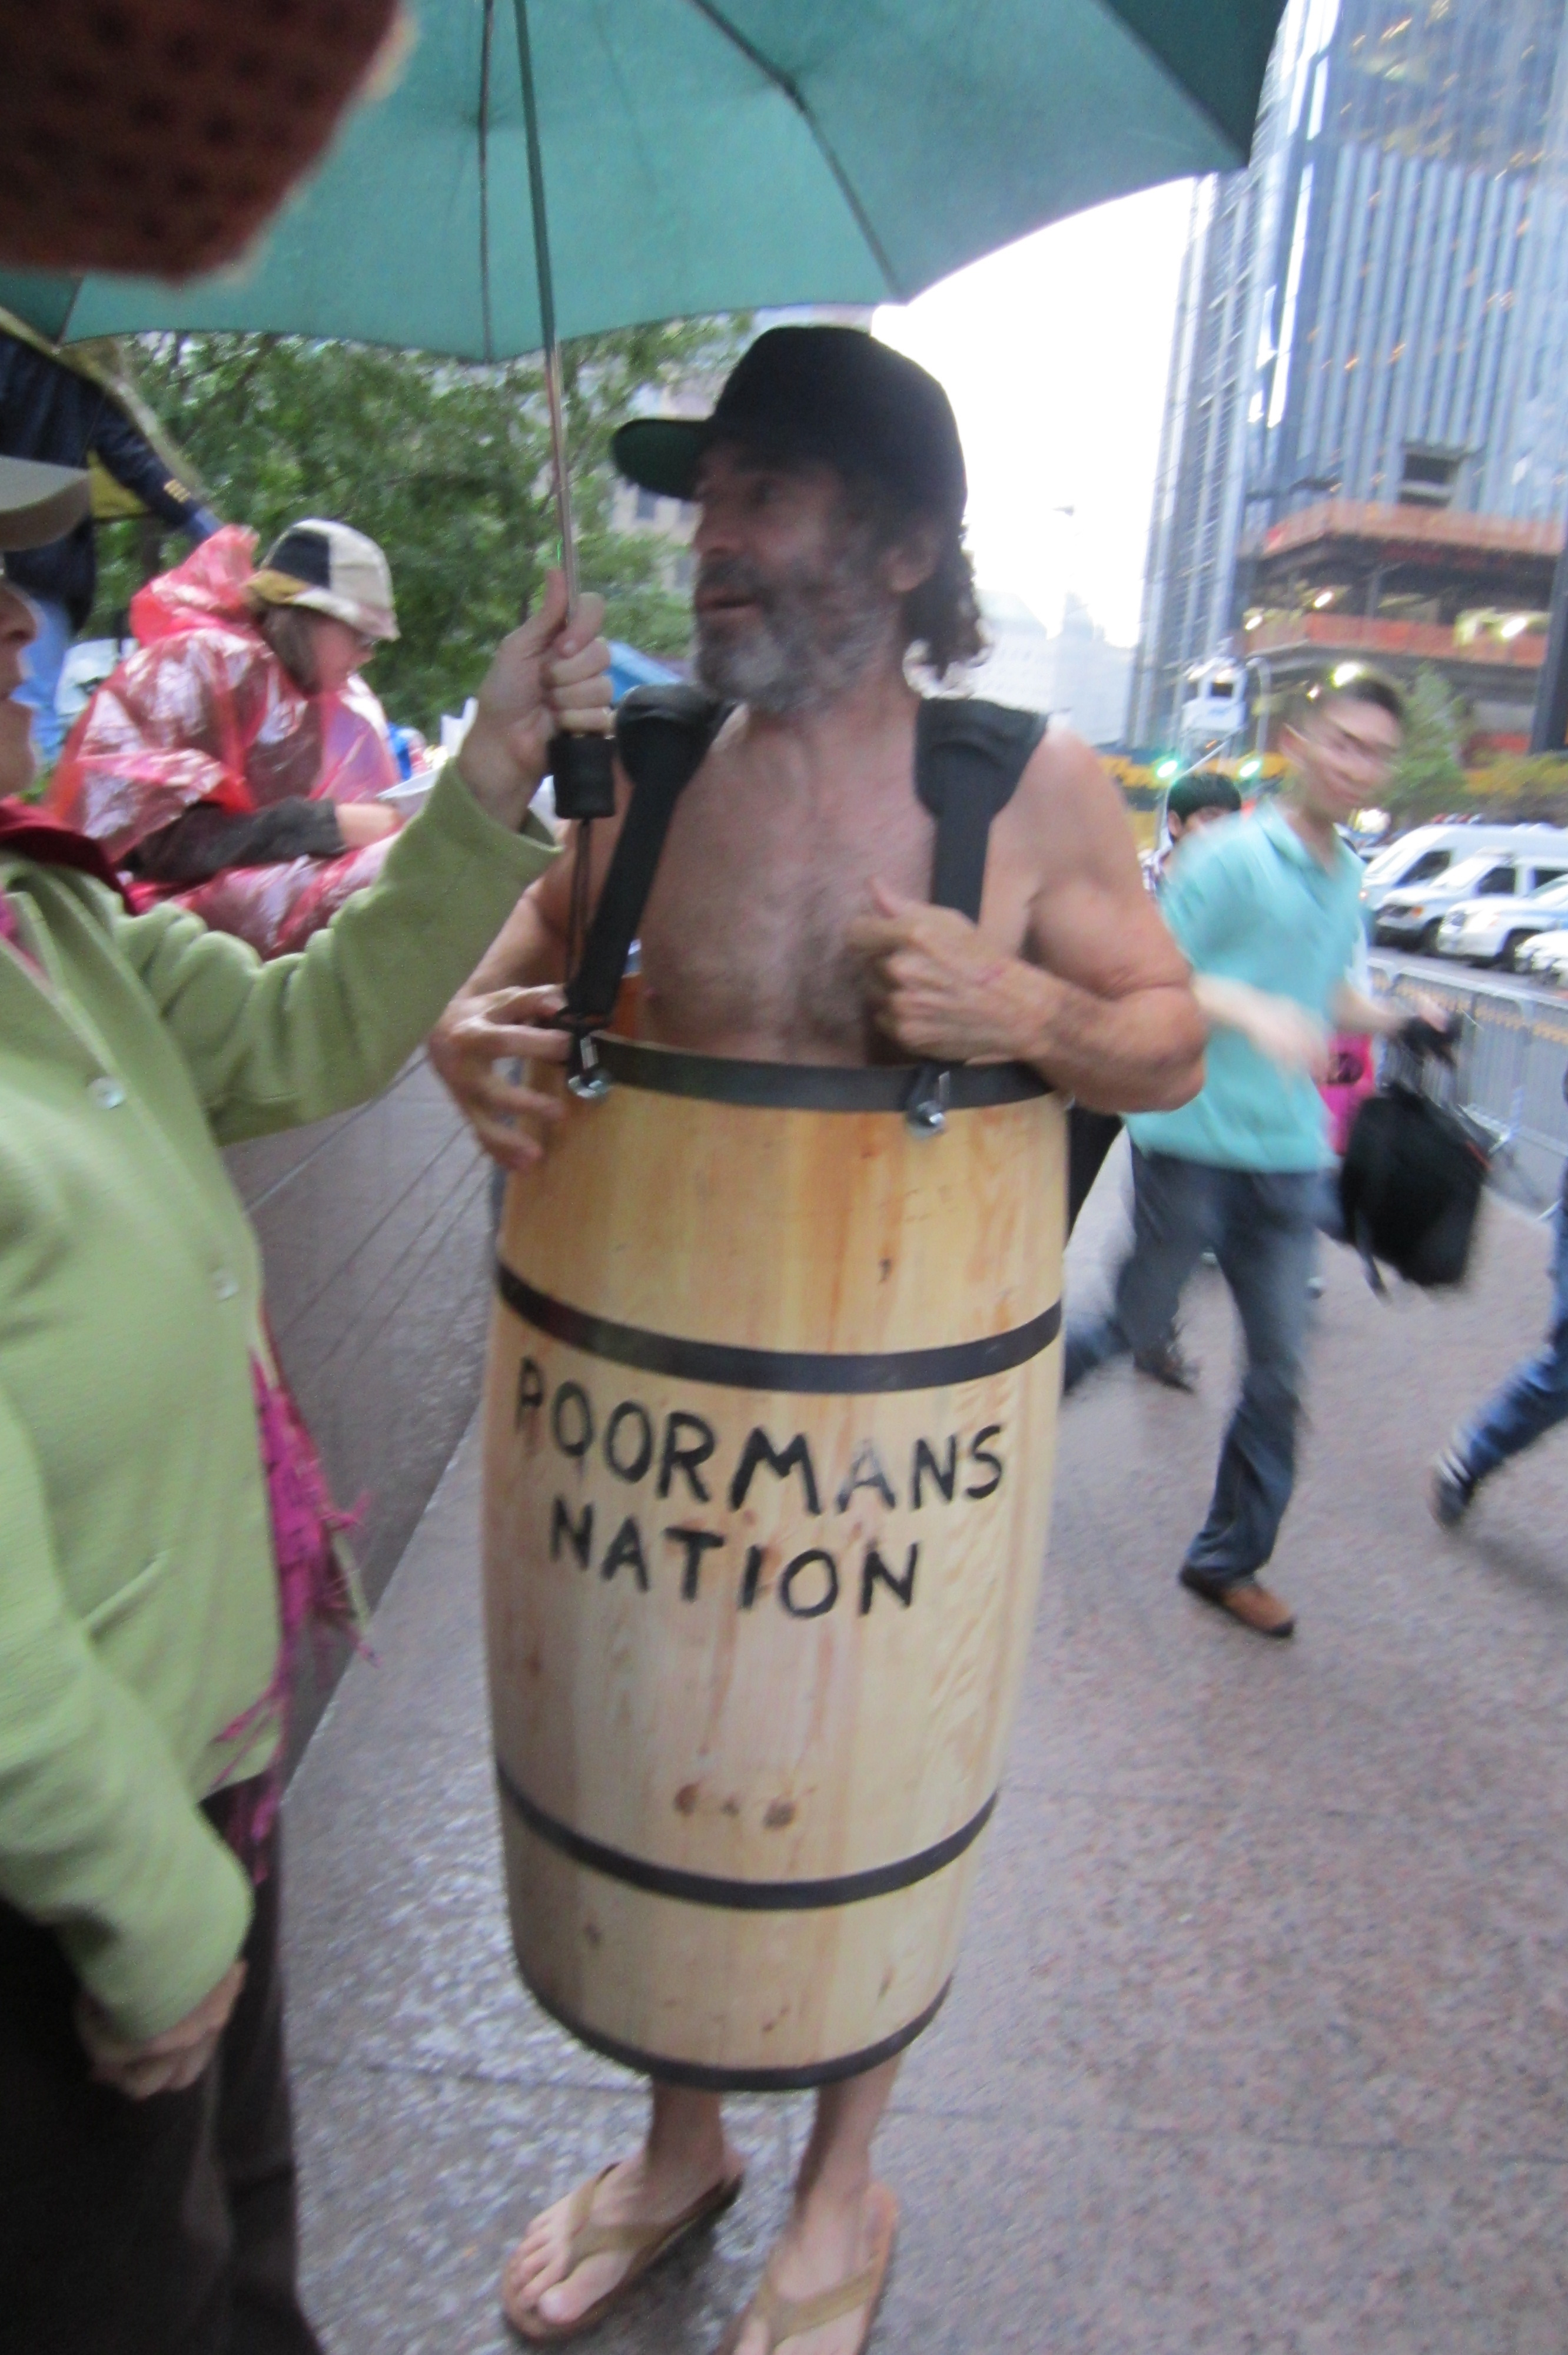 Poorman's Nation